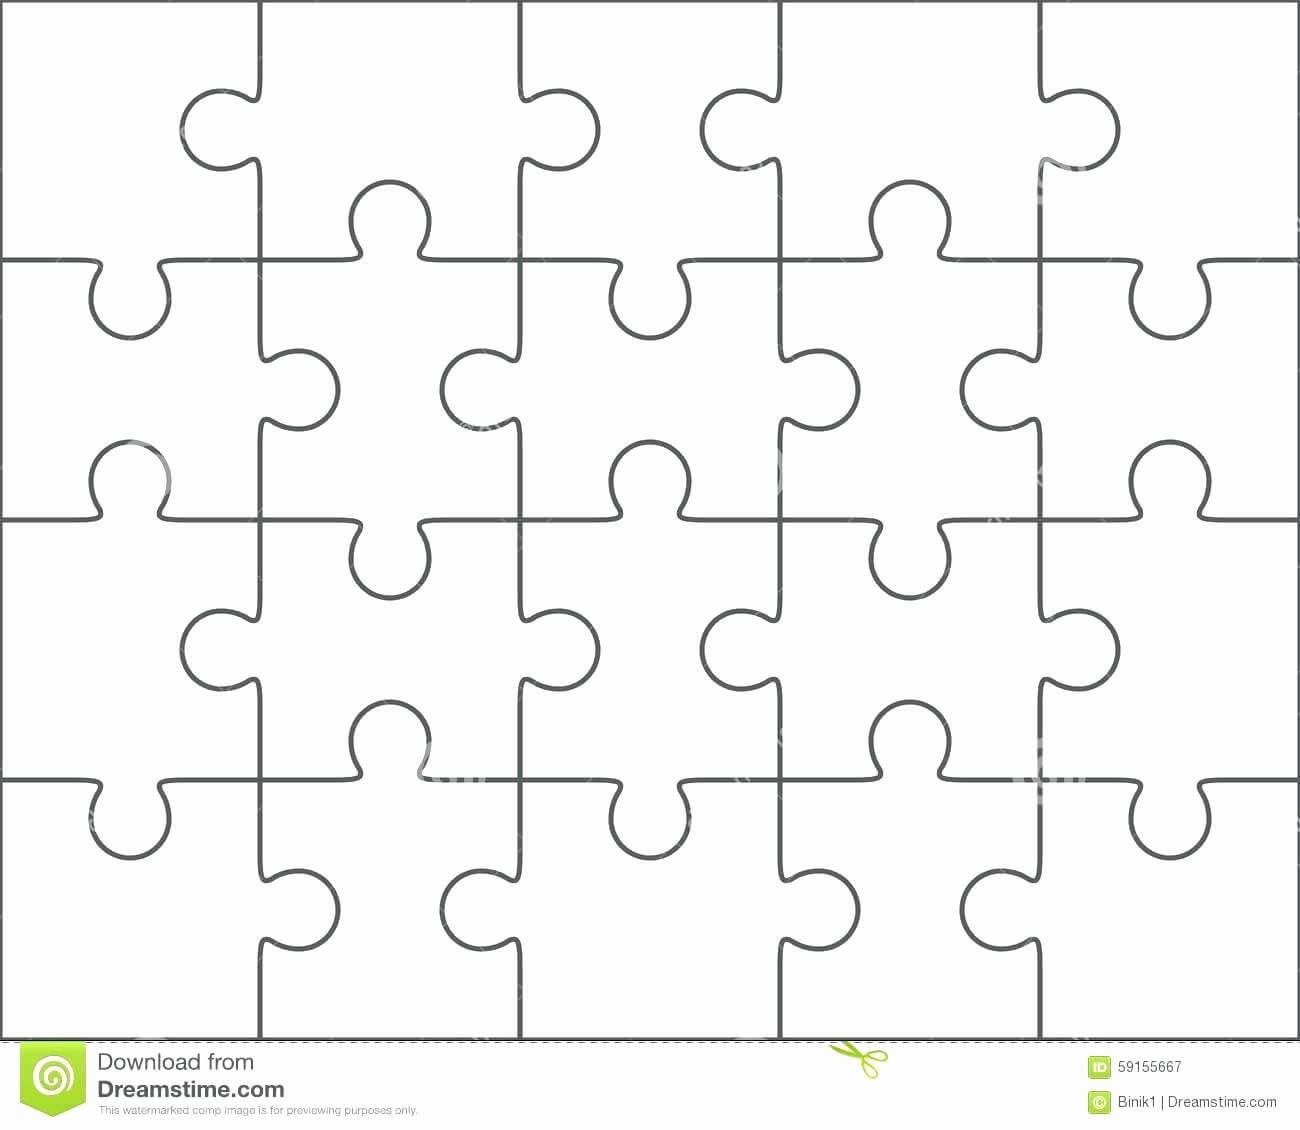 030 Puzzle Pieces Template For Word Best Of Piece Intended Throughout Jigsaw Puzzle Template For Word